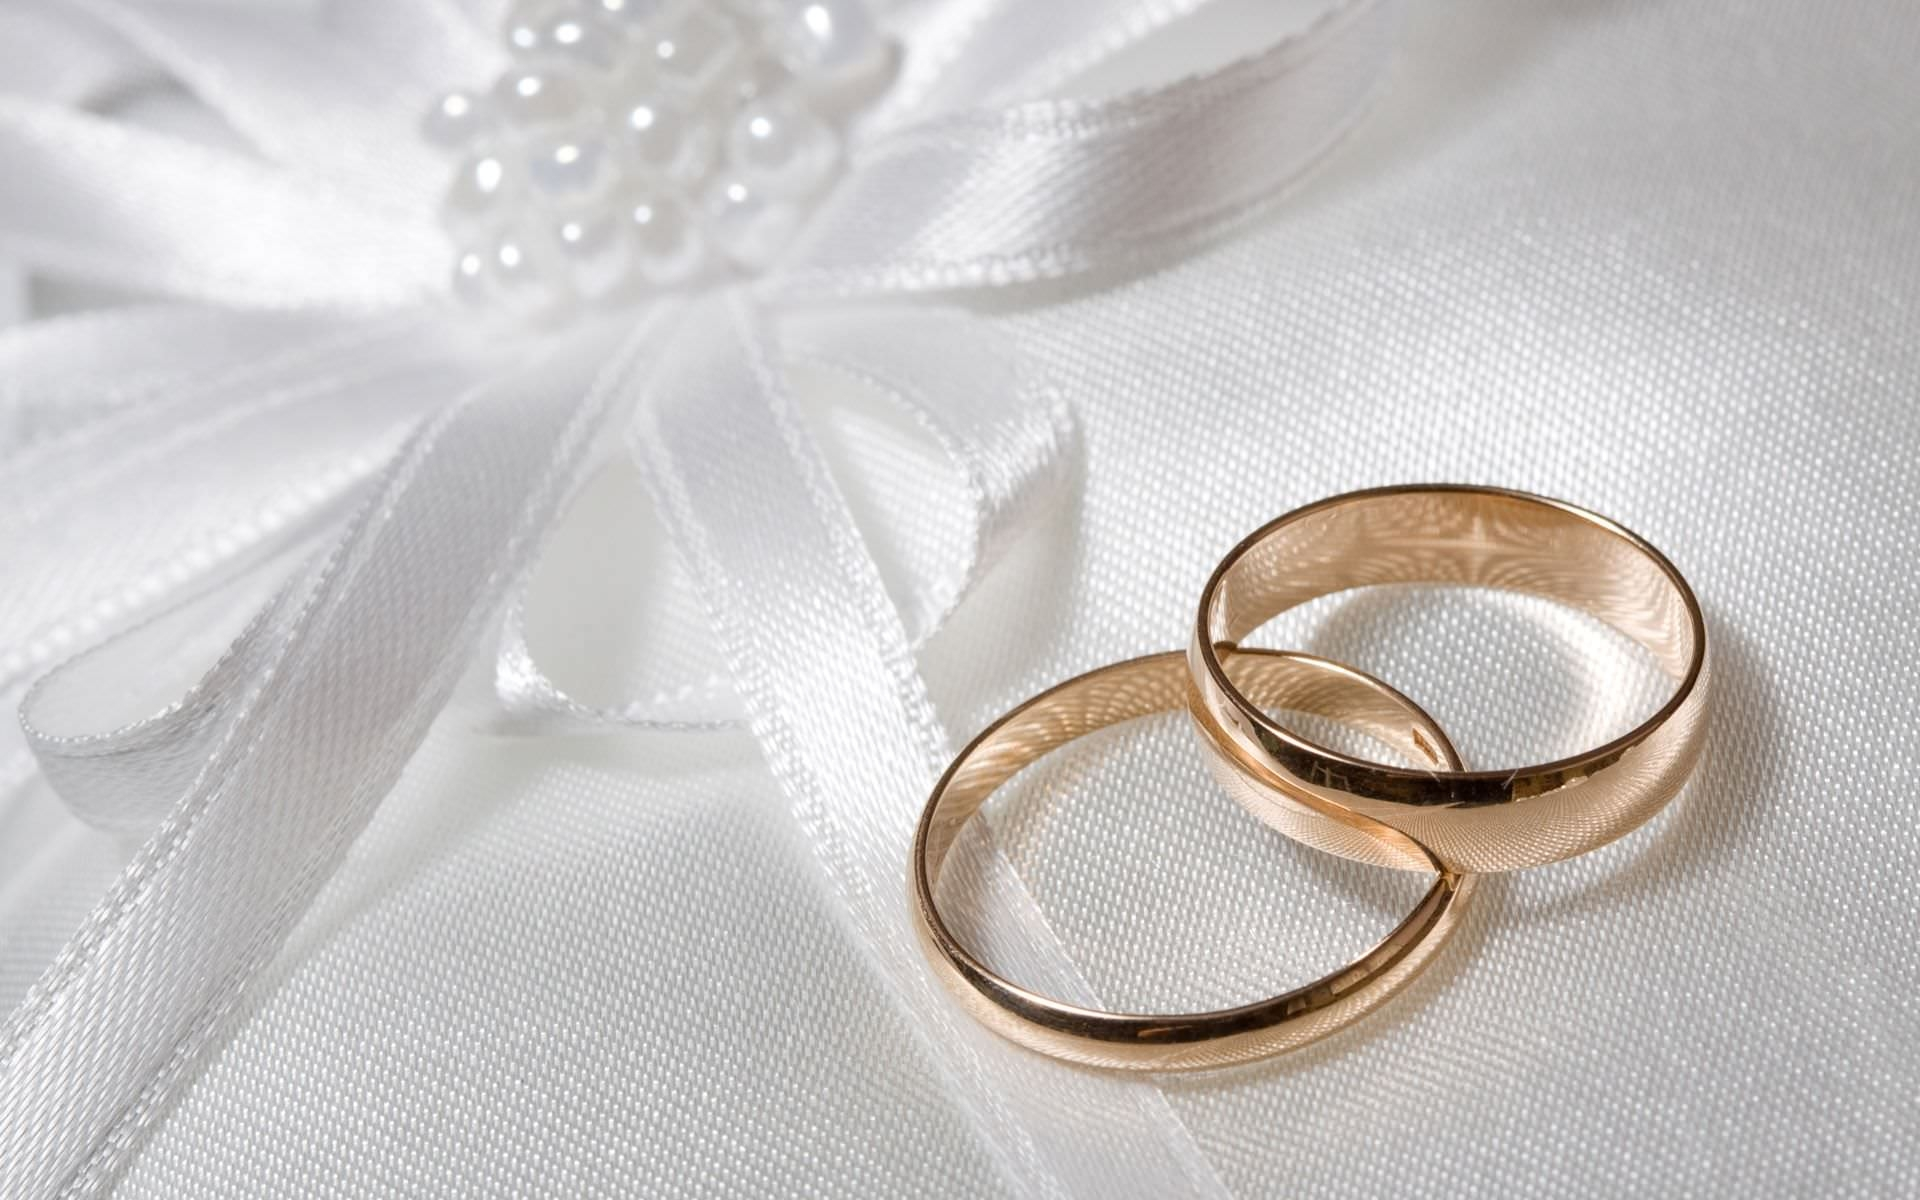 Wedding Rings Background Wallpaper